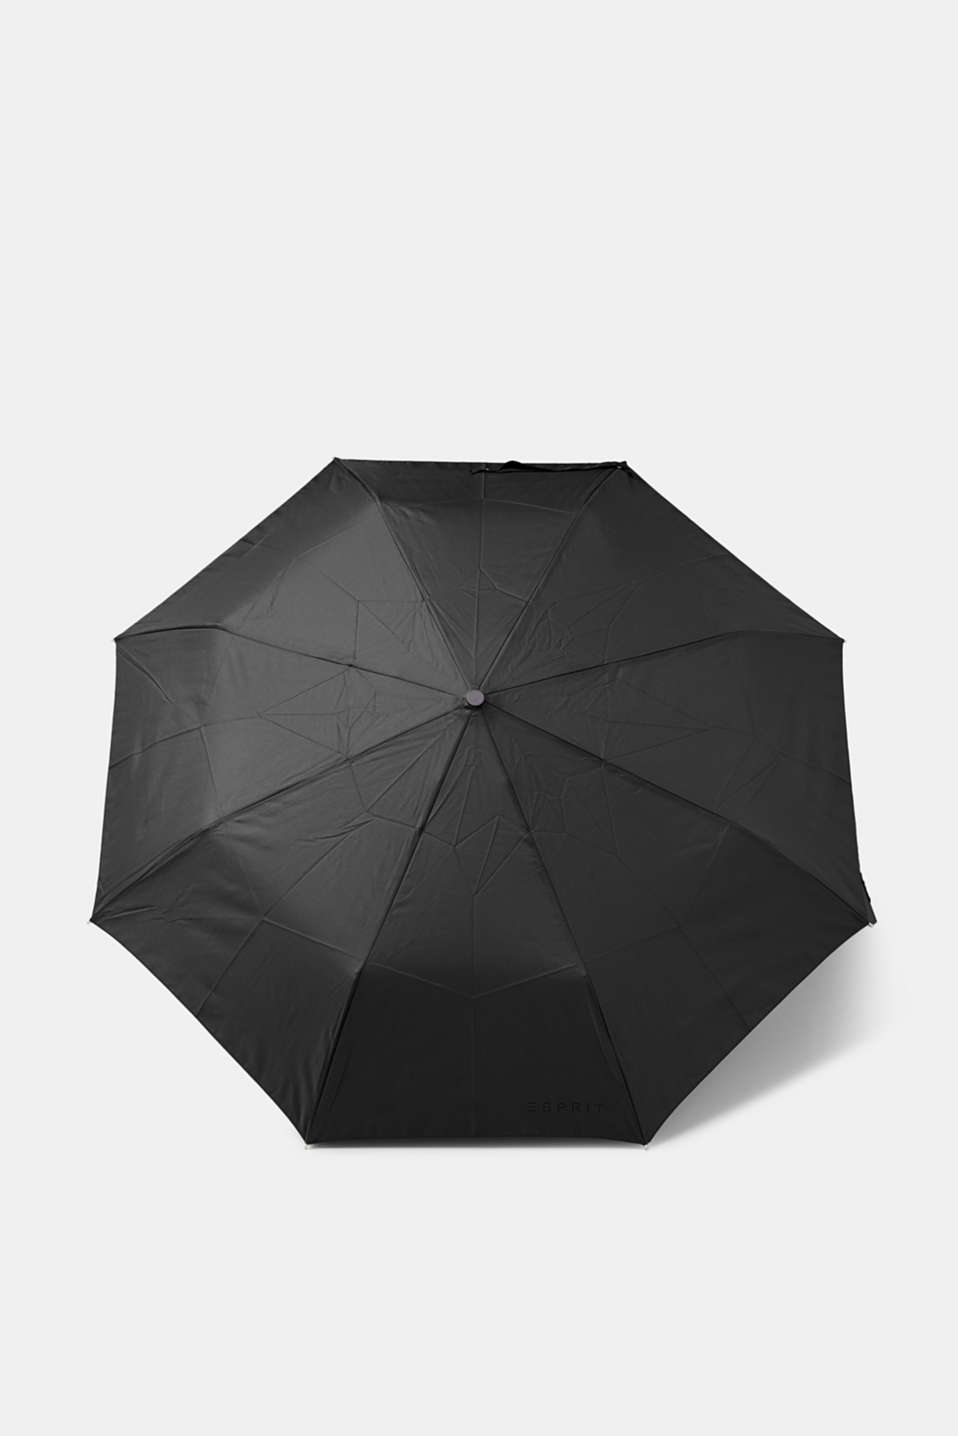 Esprit - Mini pocket-sized umbrella, ultra-light